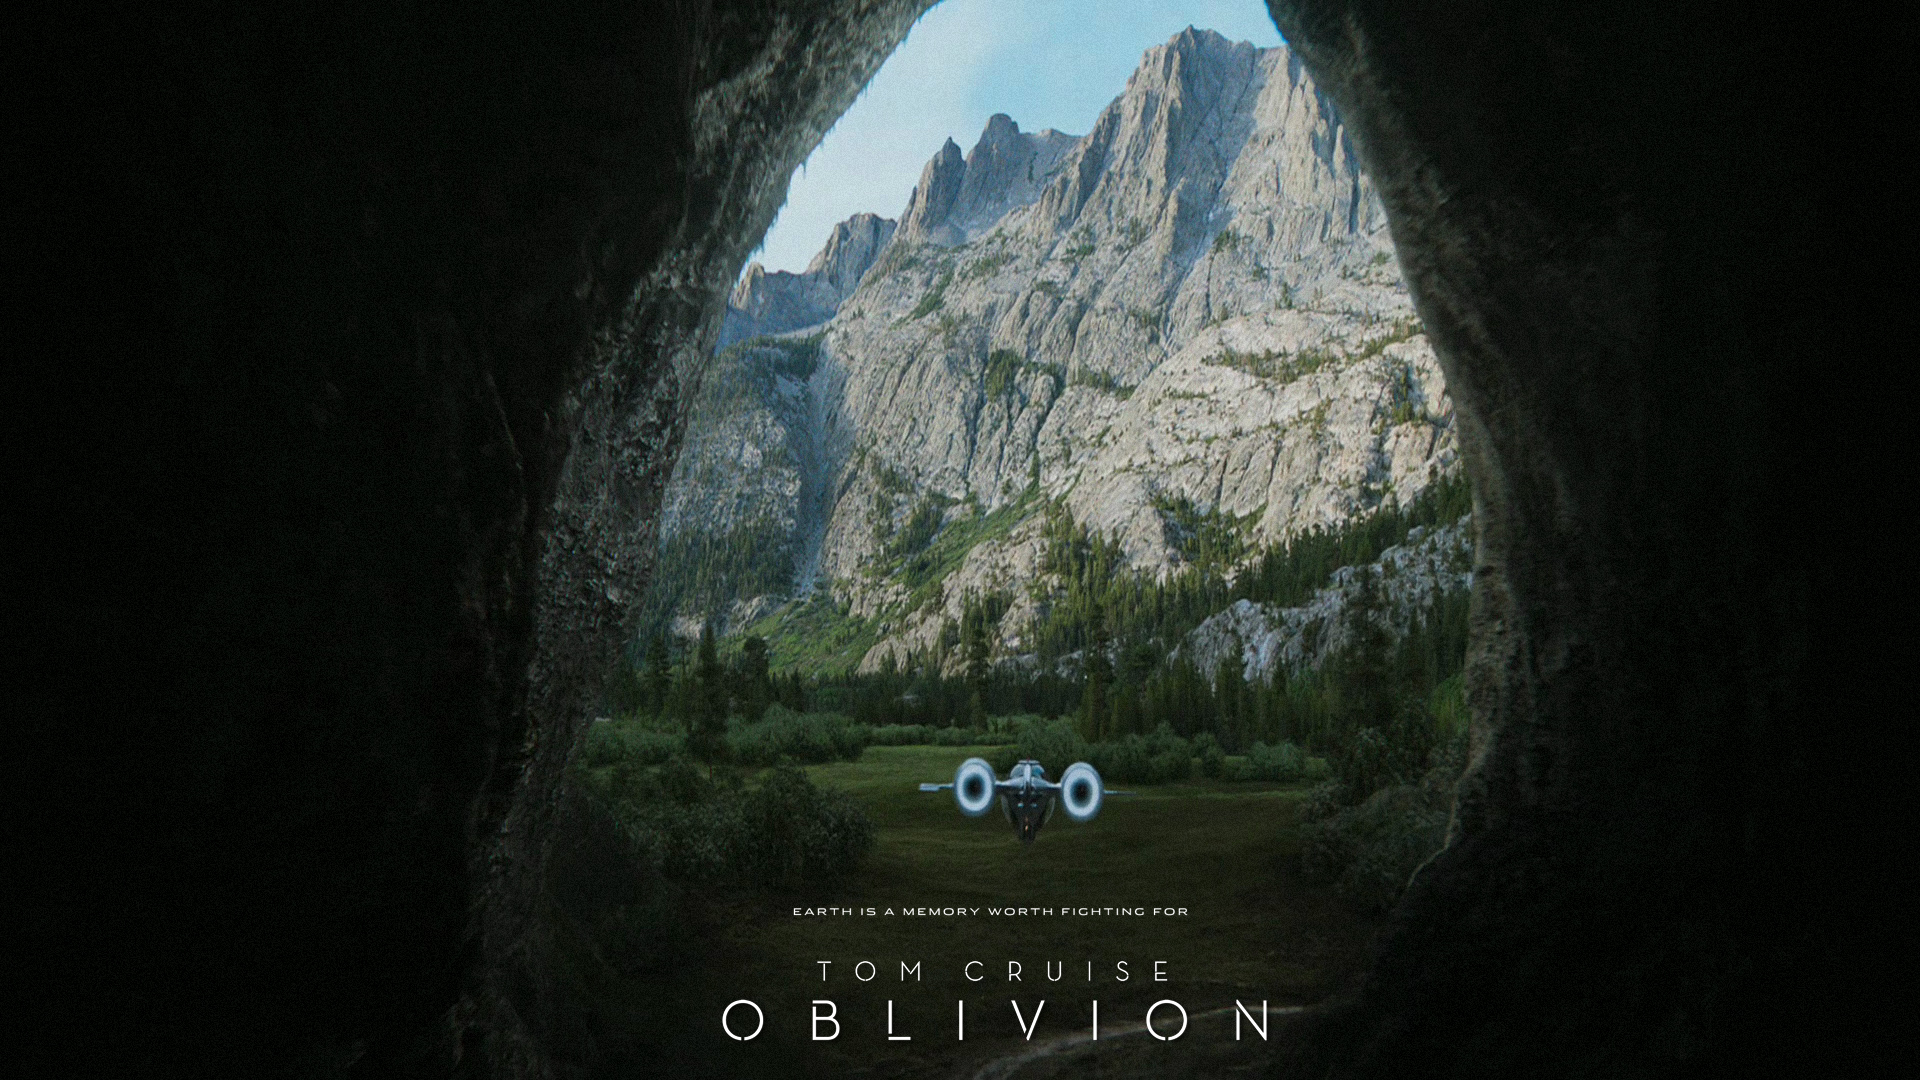 Tom Cruise -Oblivion wallpapers (6)